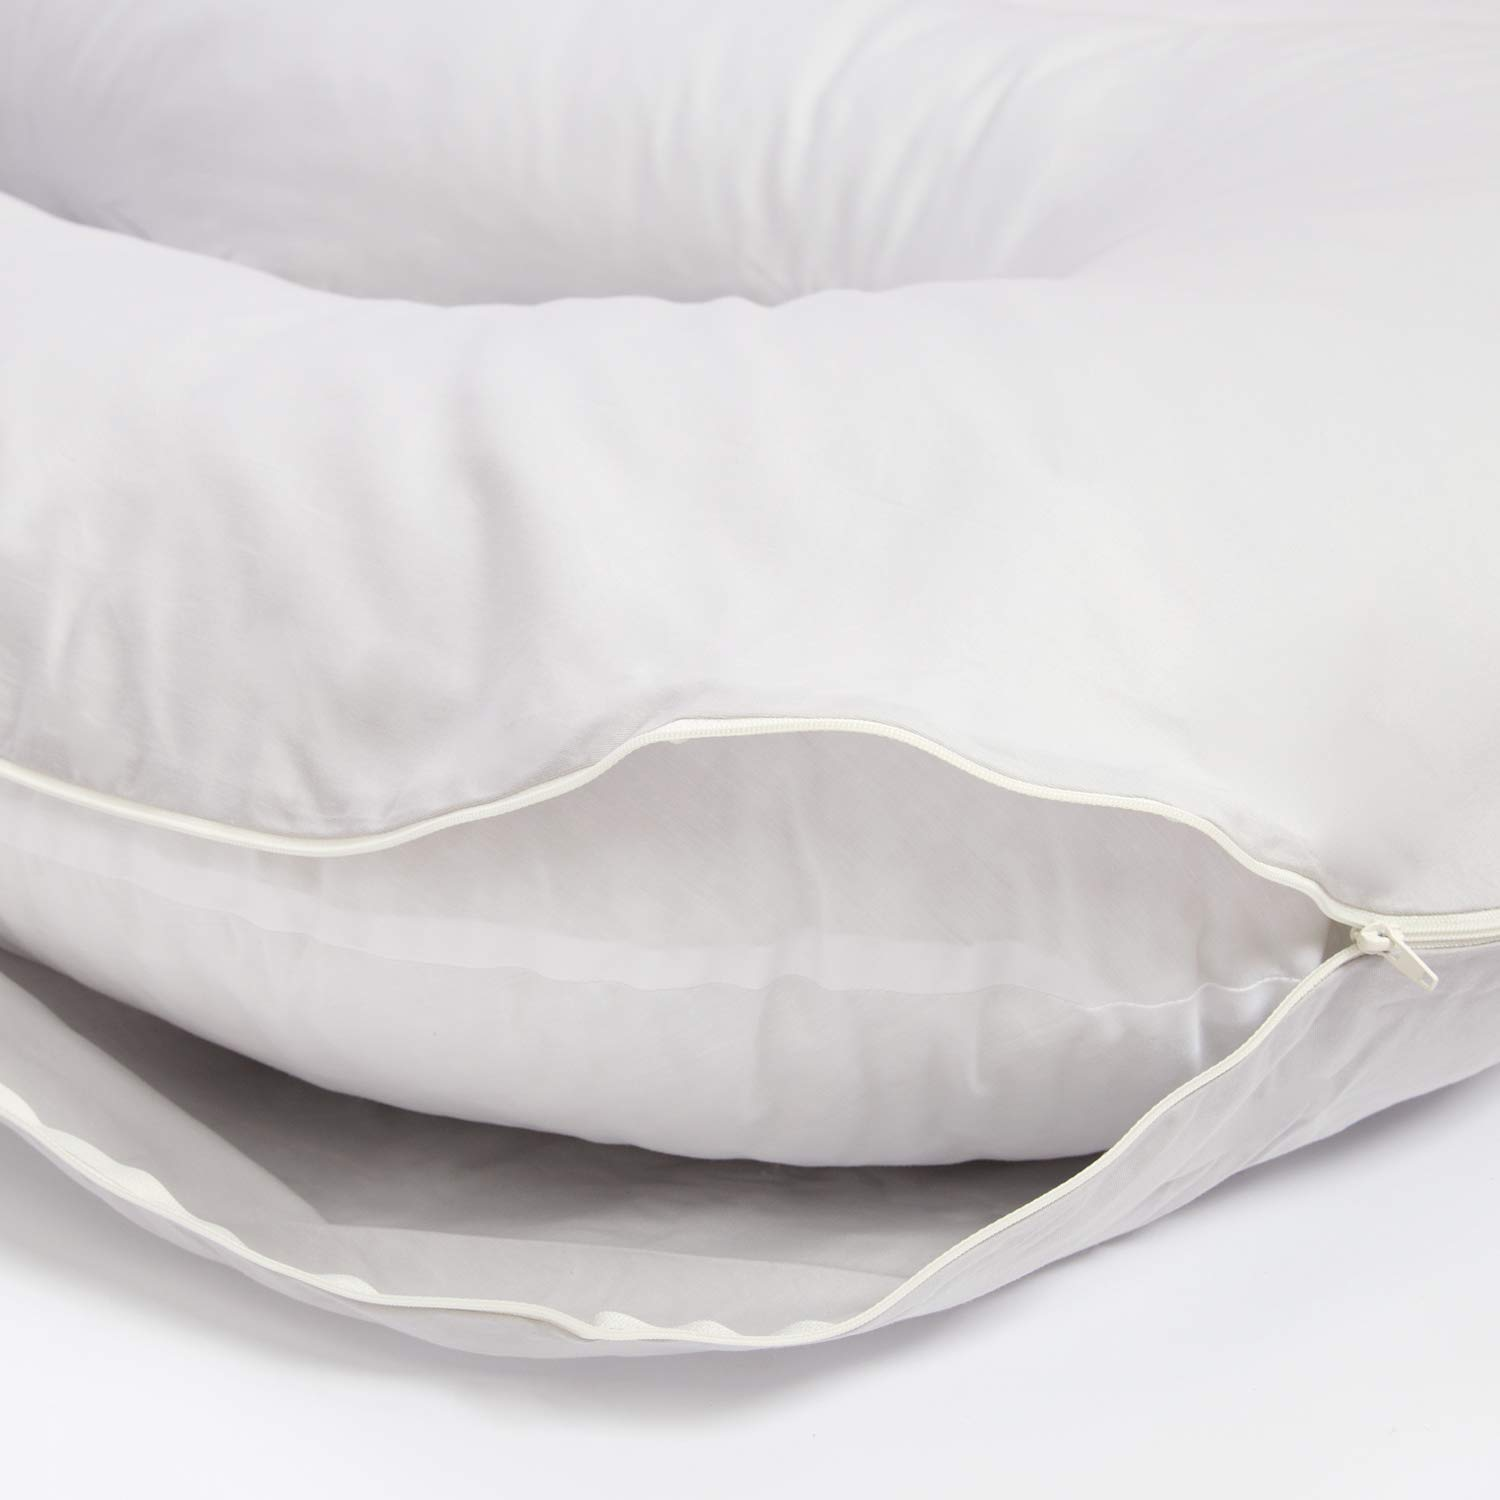 Premium U Shape Pregnancy Pillow - Maternity Pillow - for Side Sleeping